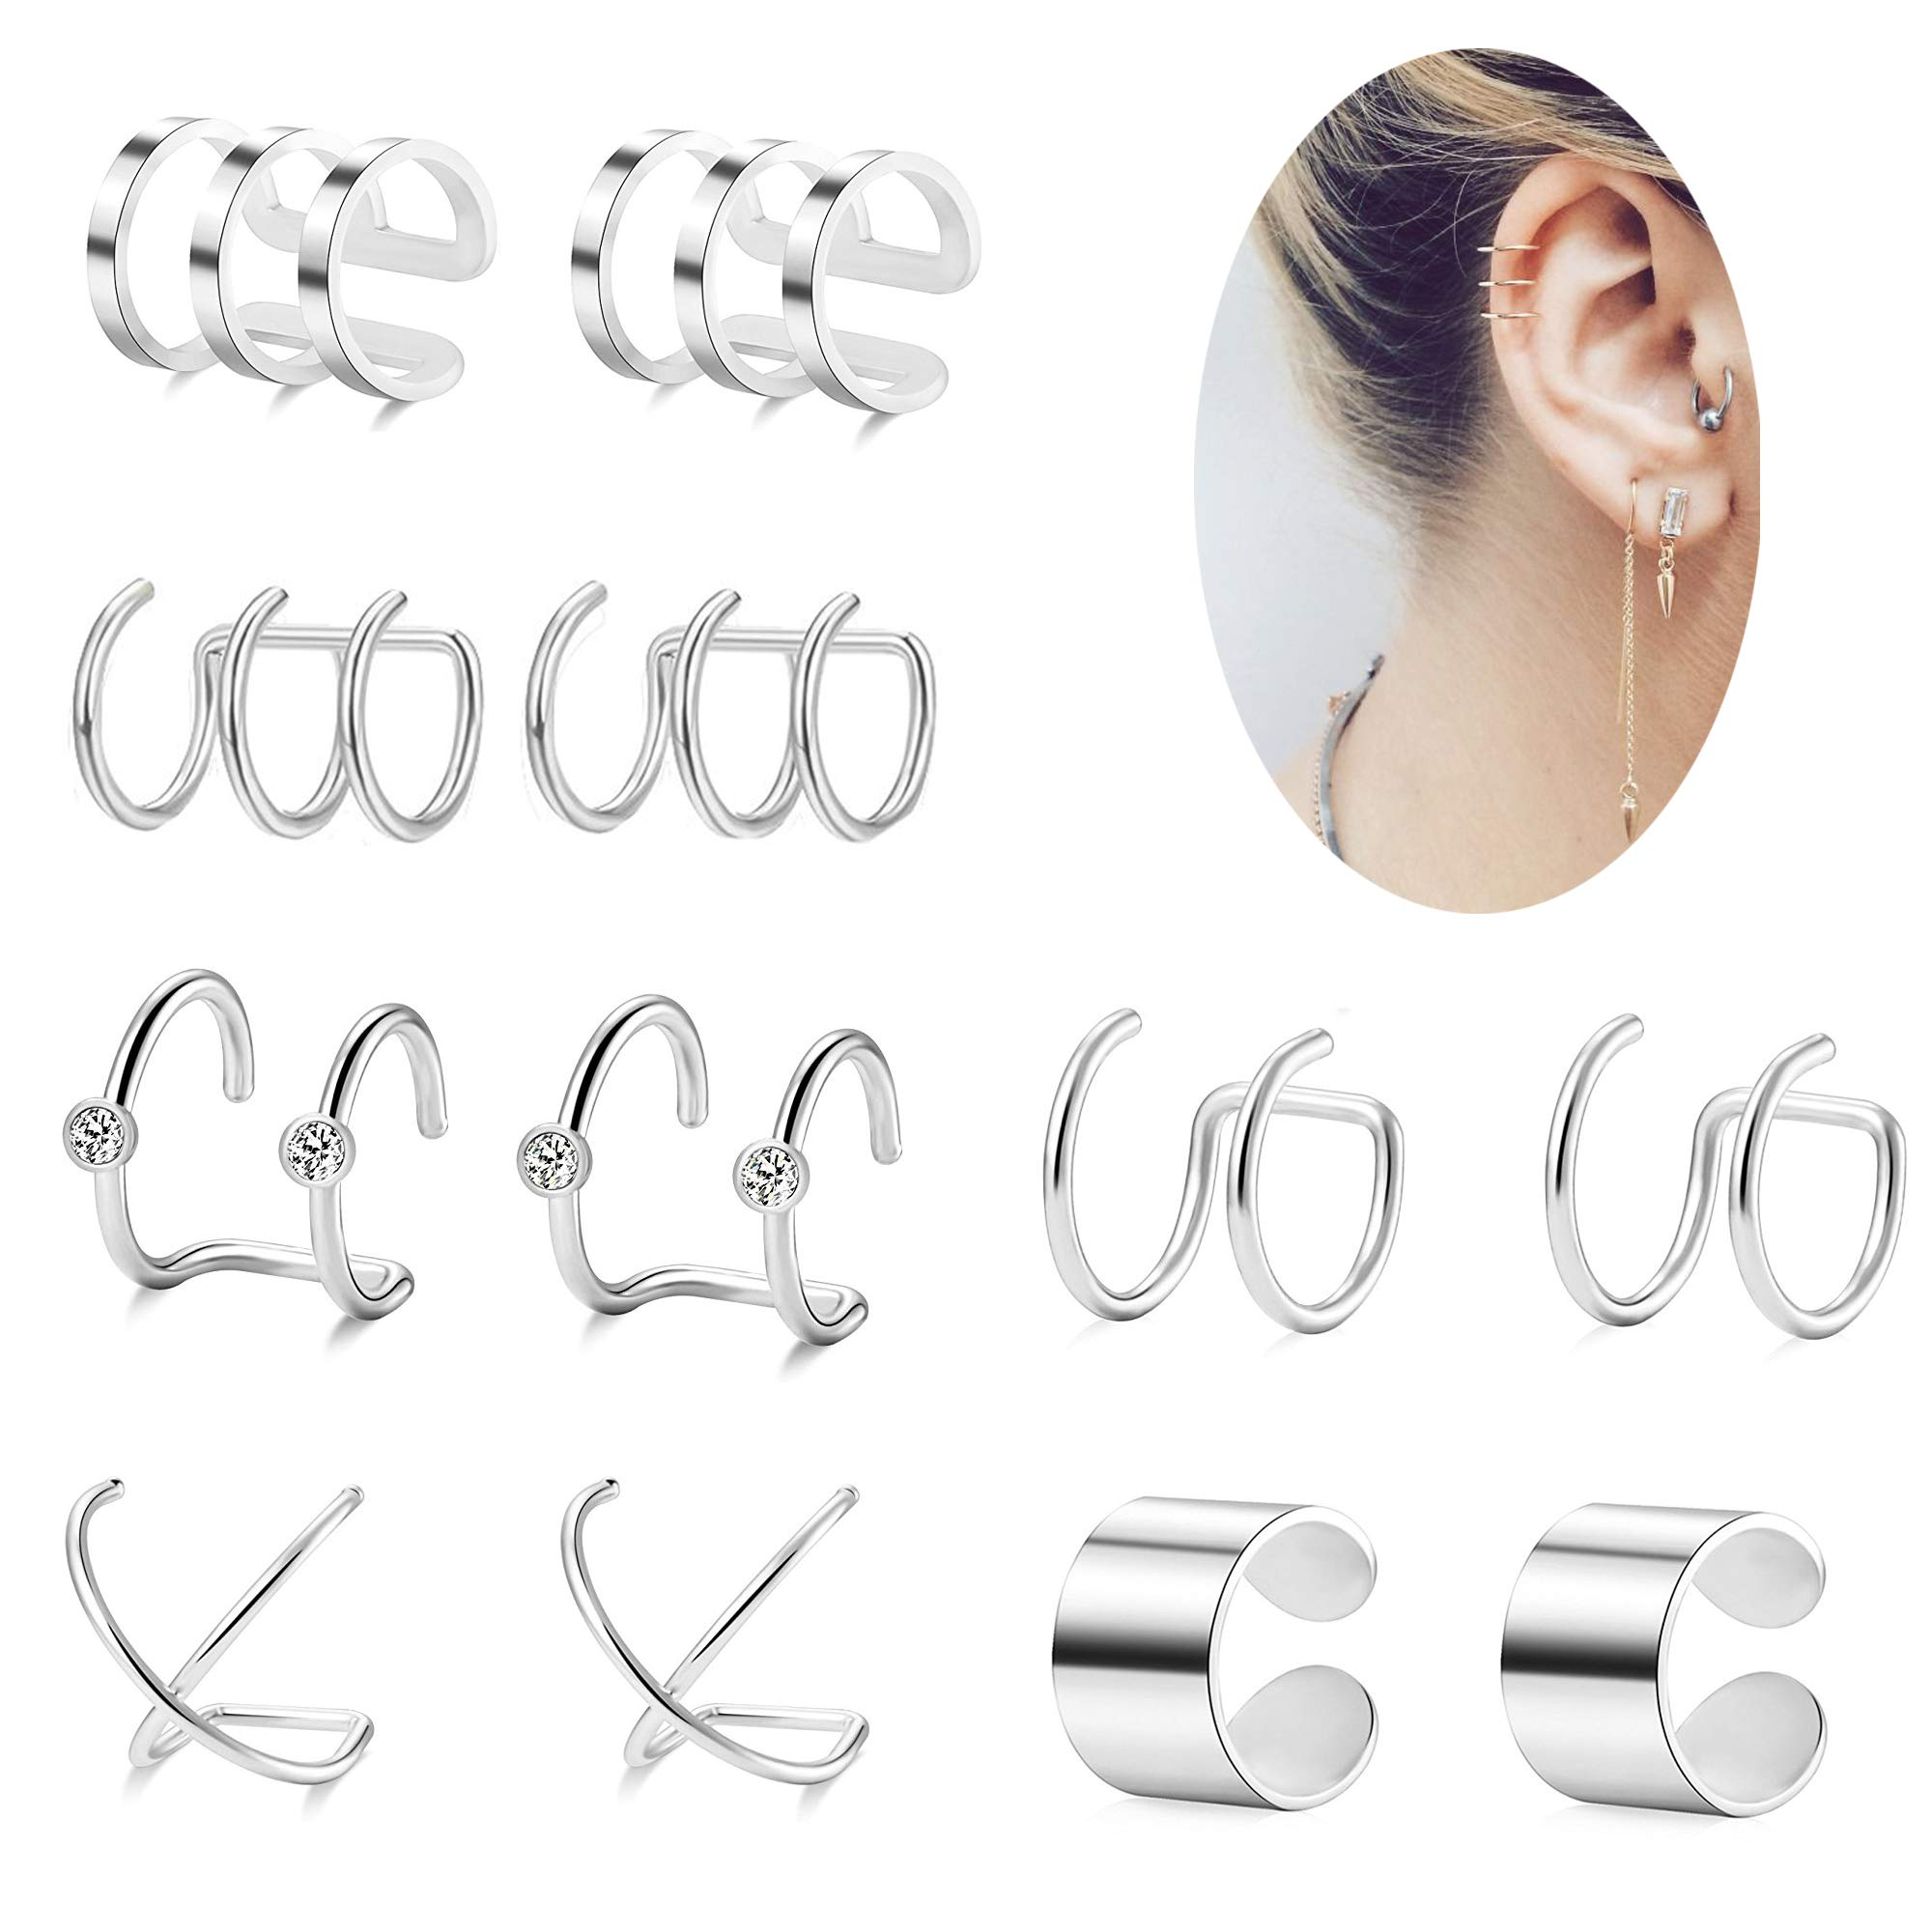 Besteel 6 Pairs Ear Cuffs Earrings for Women Girls Non-piercing Fake Cartilage Earring Sliver-tone